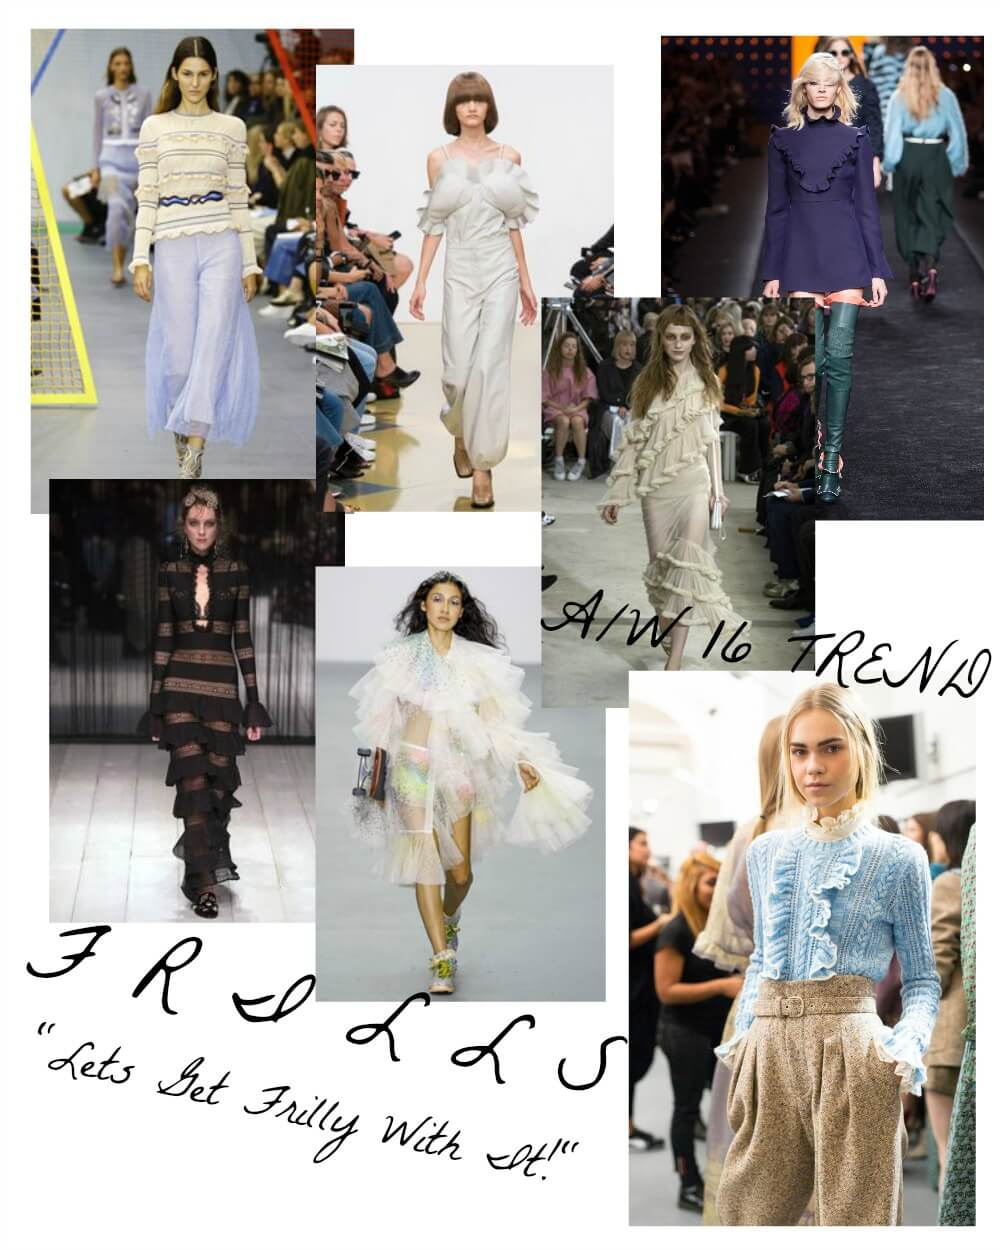 Frills Trend AW16 Get The Look with these high street edit